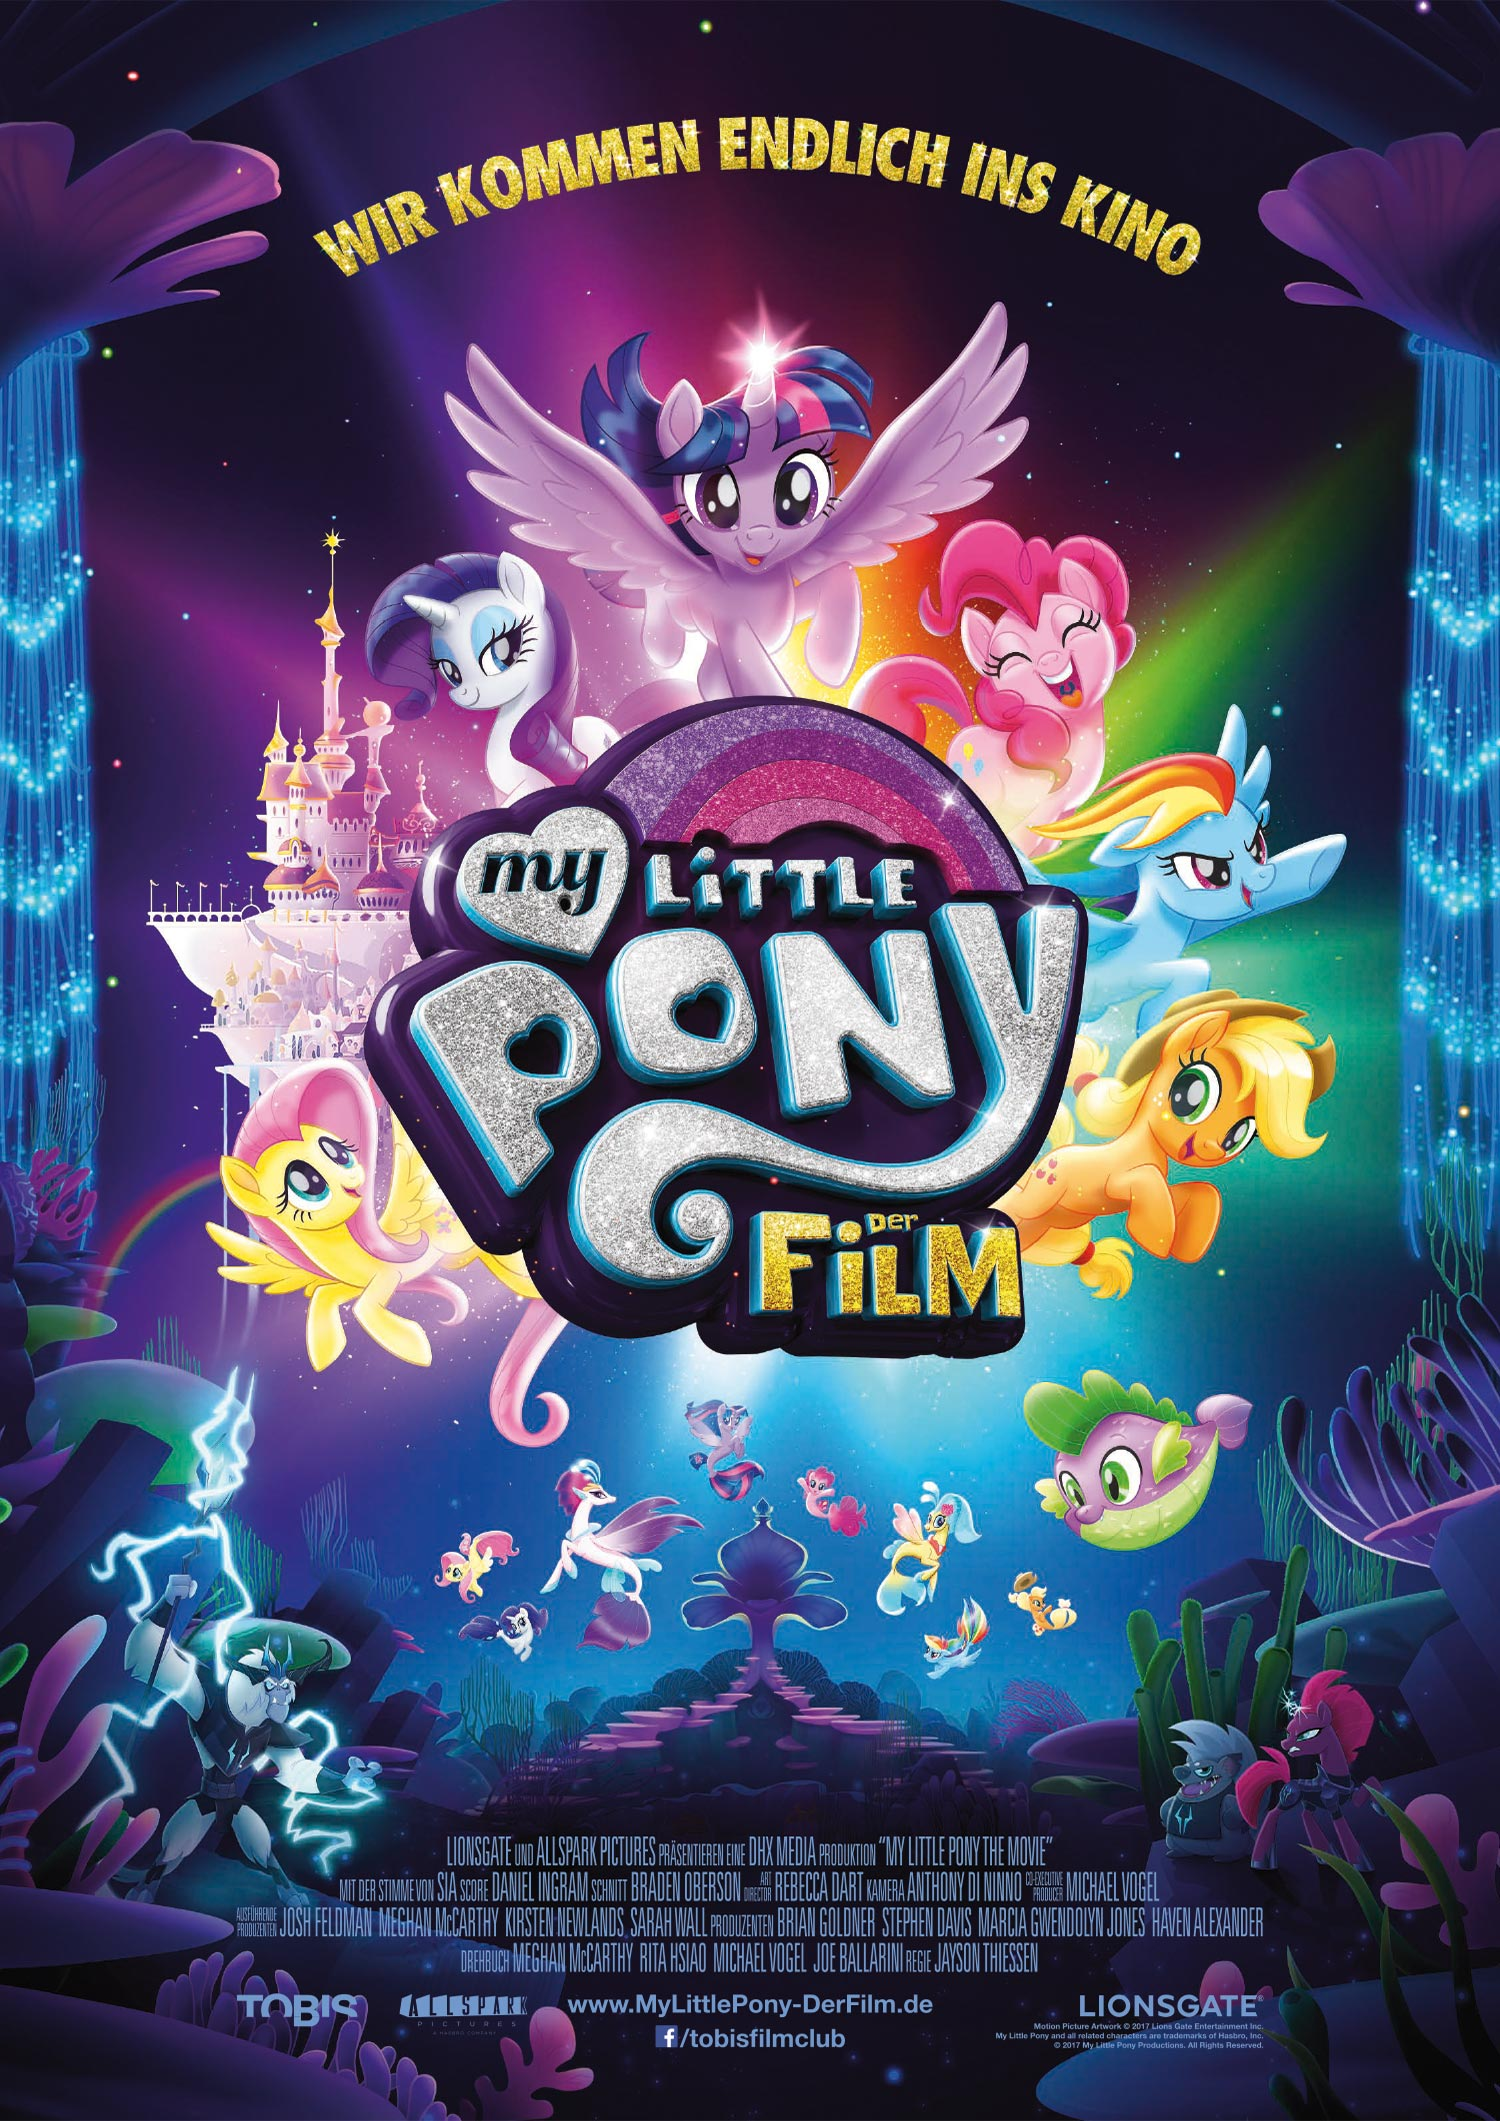 "NFP*<a href=""/my-little-pony-der-film"">→</a><strong>Adaption</strong>"